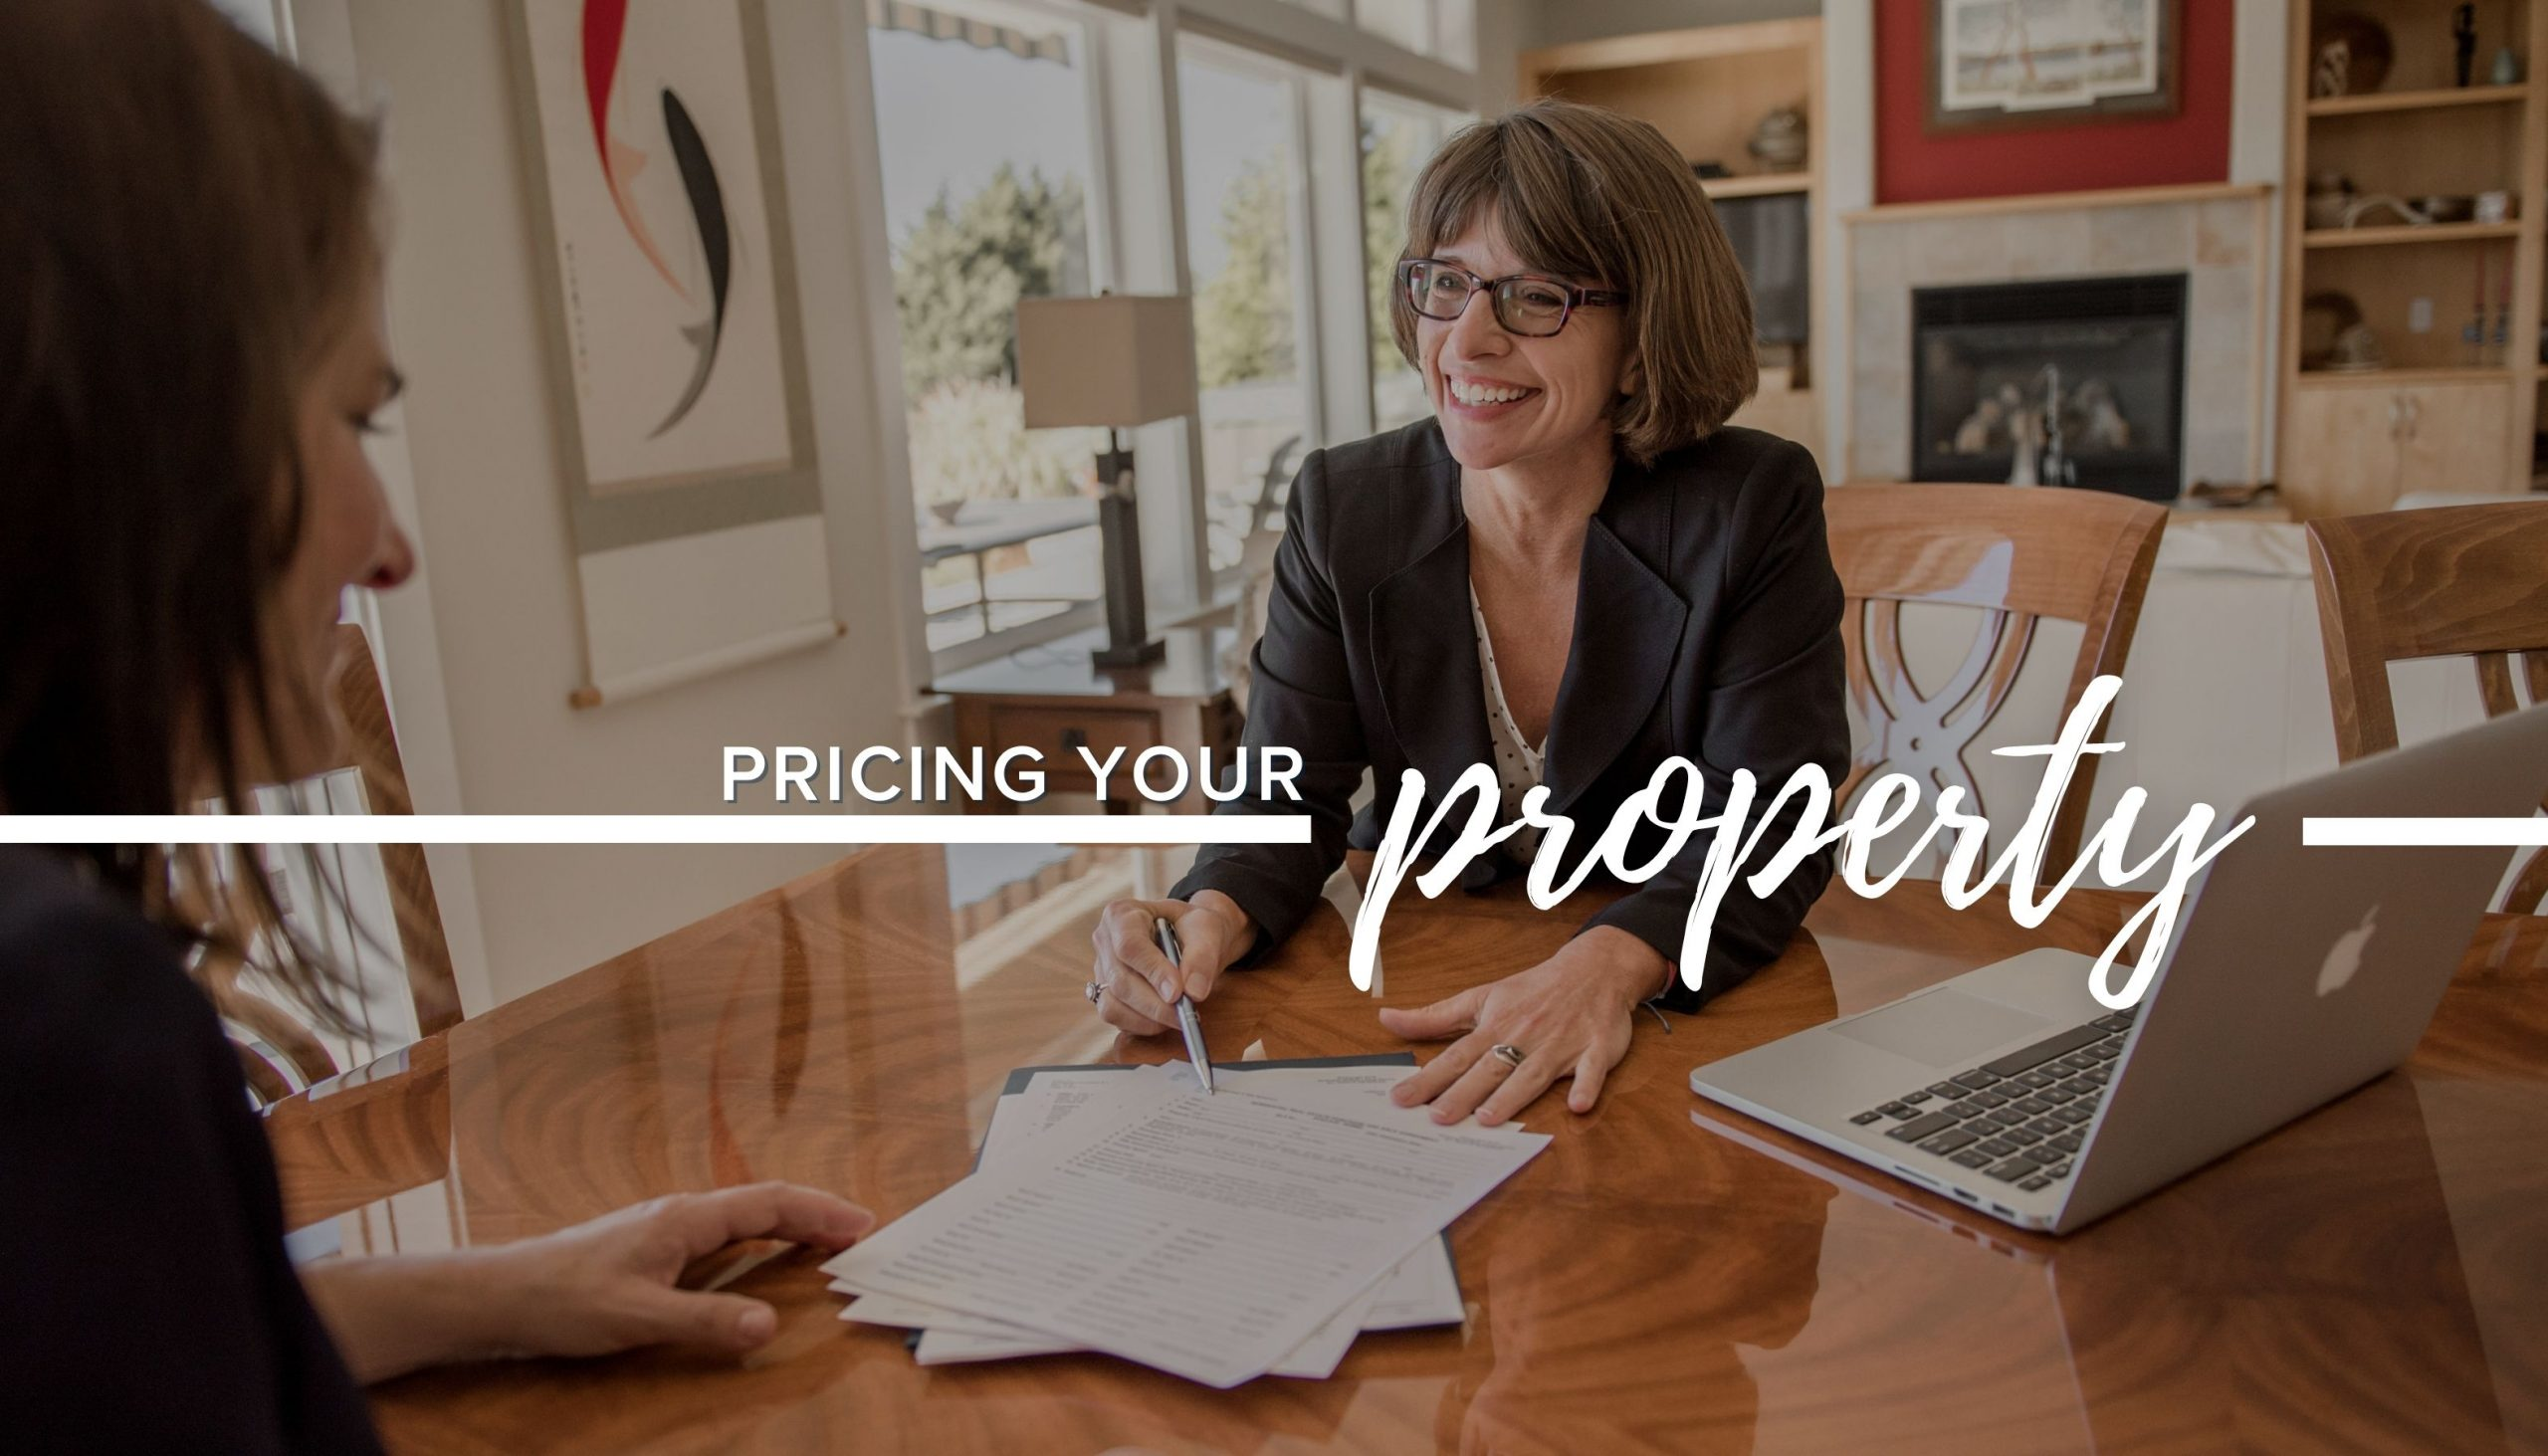 Sellers, Pricing your property